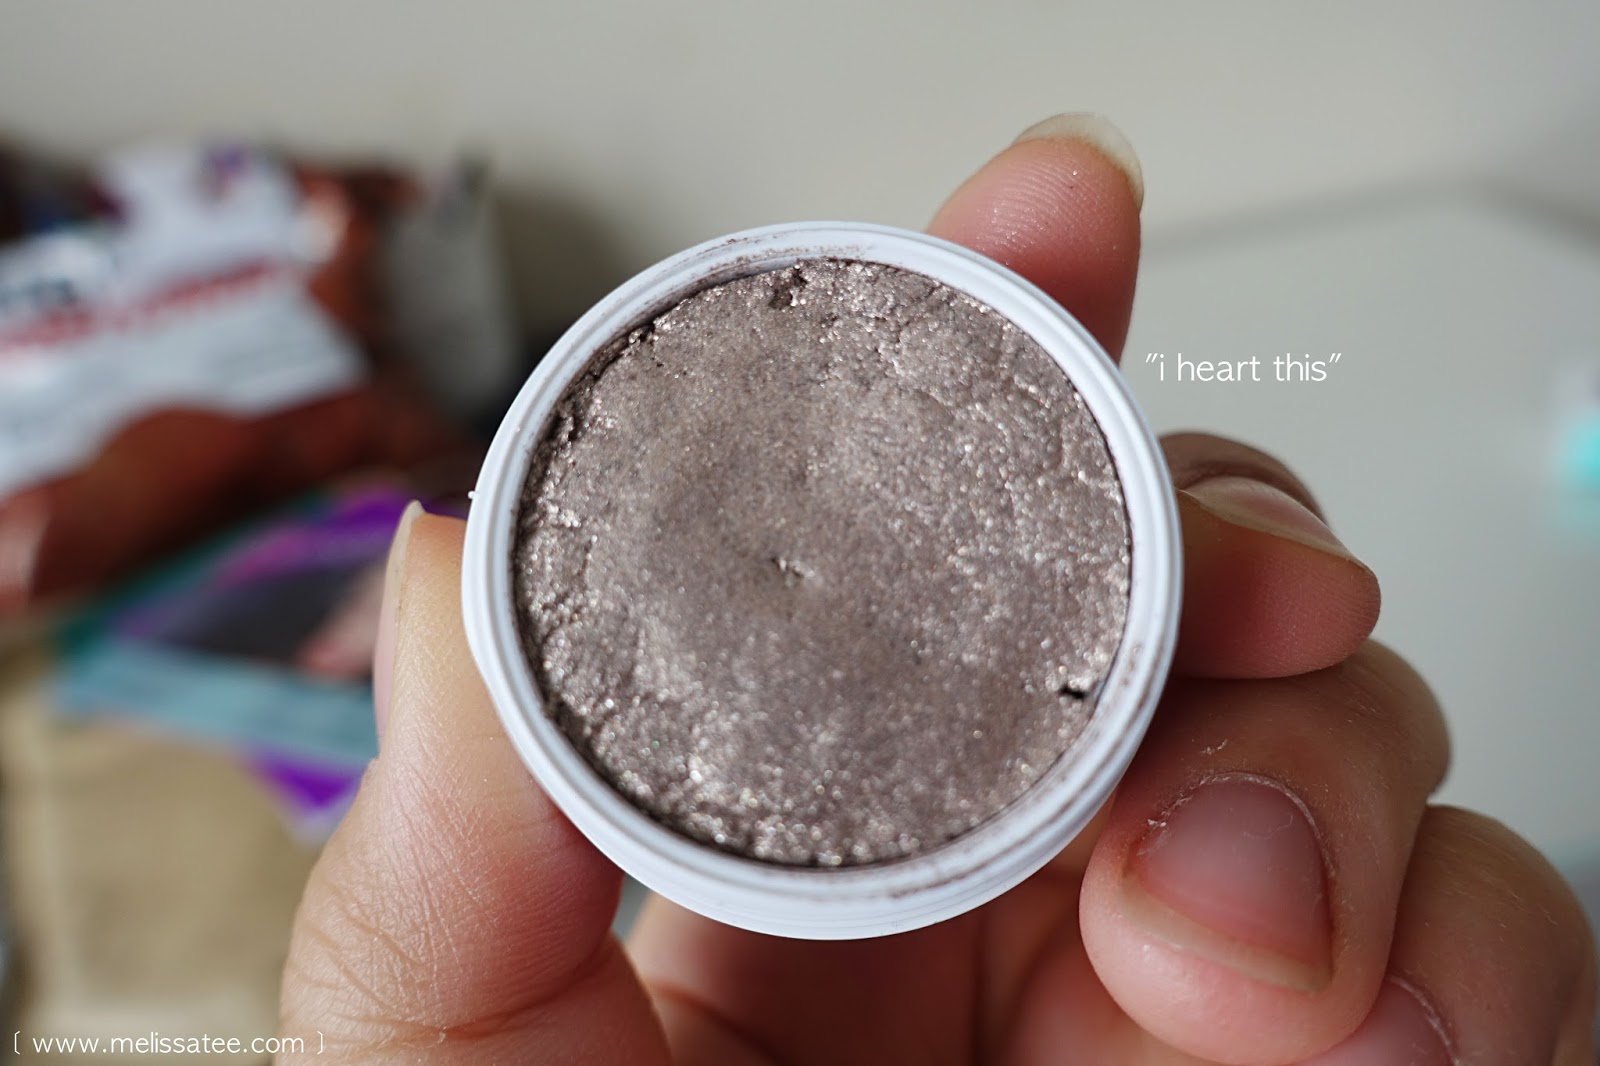 ColourPop Cosmetics, ColourPop, ColorPop, Colour Pop, Eyeshadows, Colourpop eyeshadow swatches, ColourPop I Heart This Swatch, I heart this